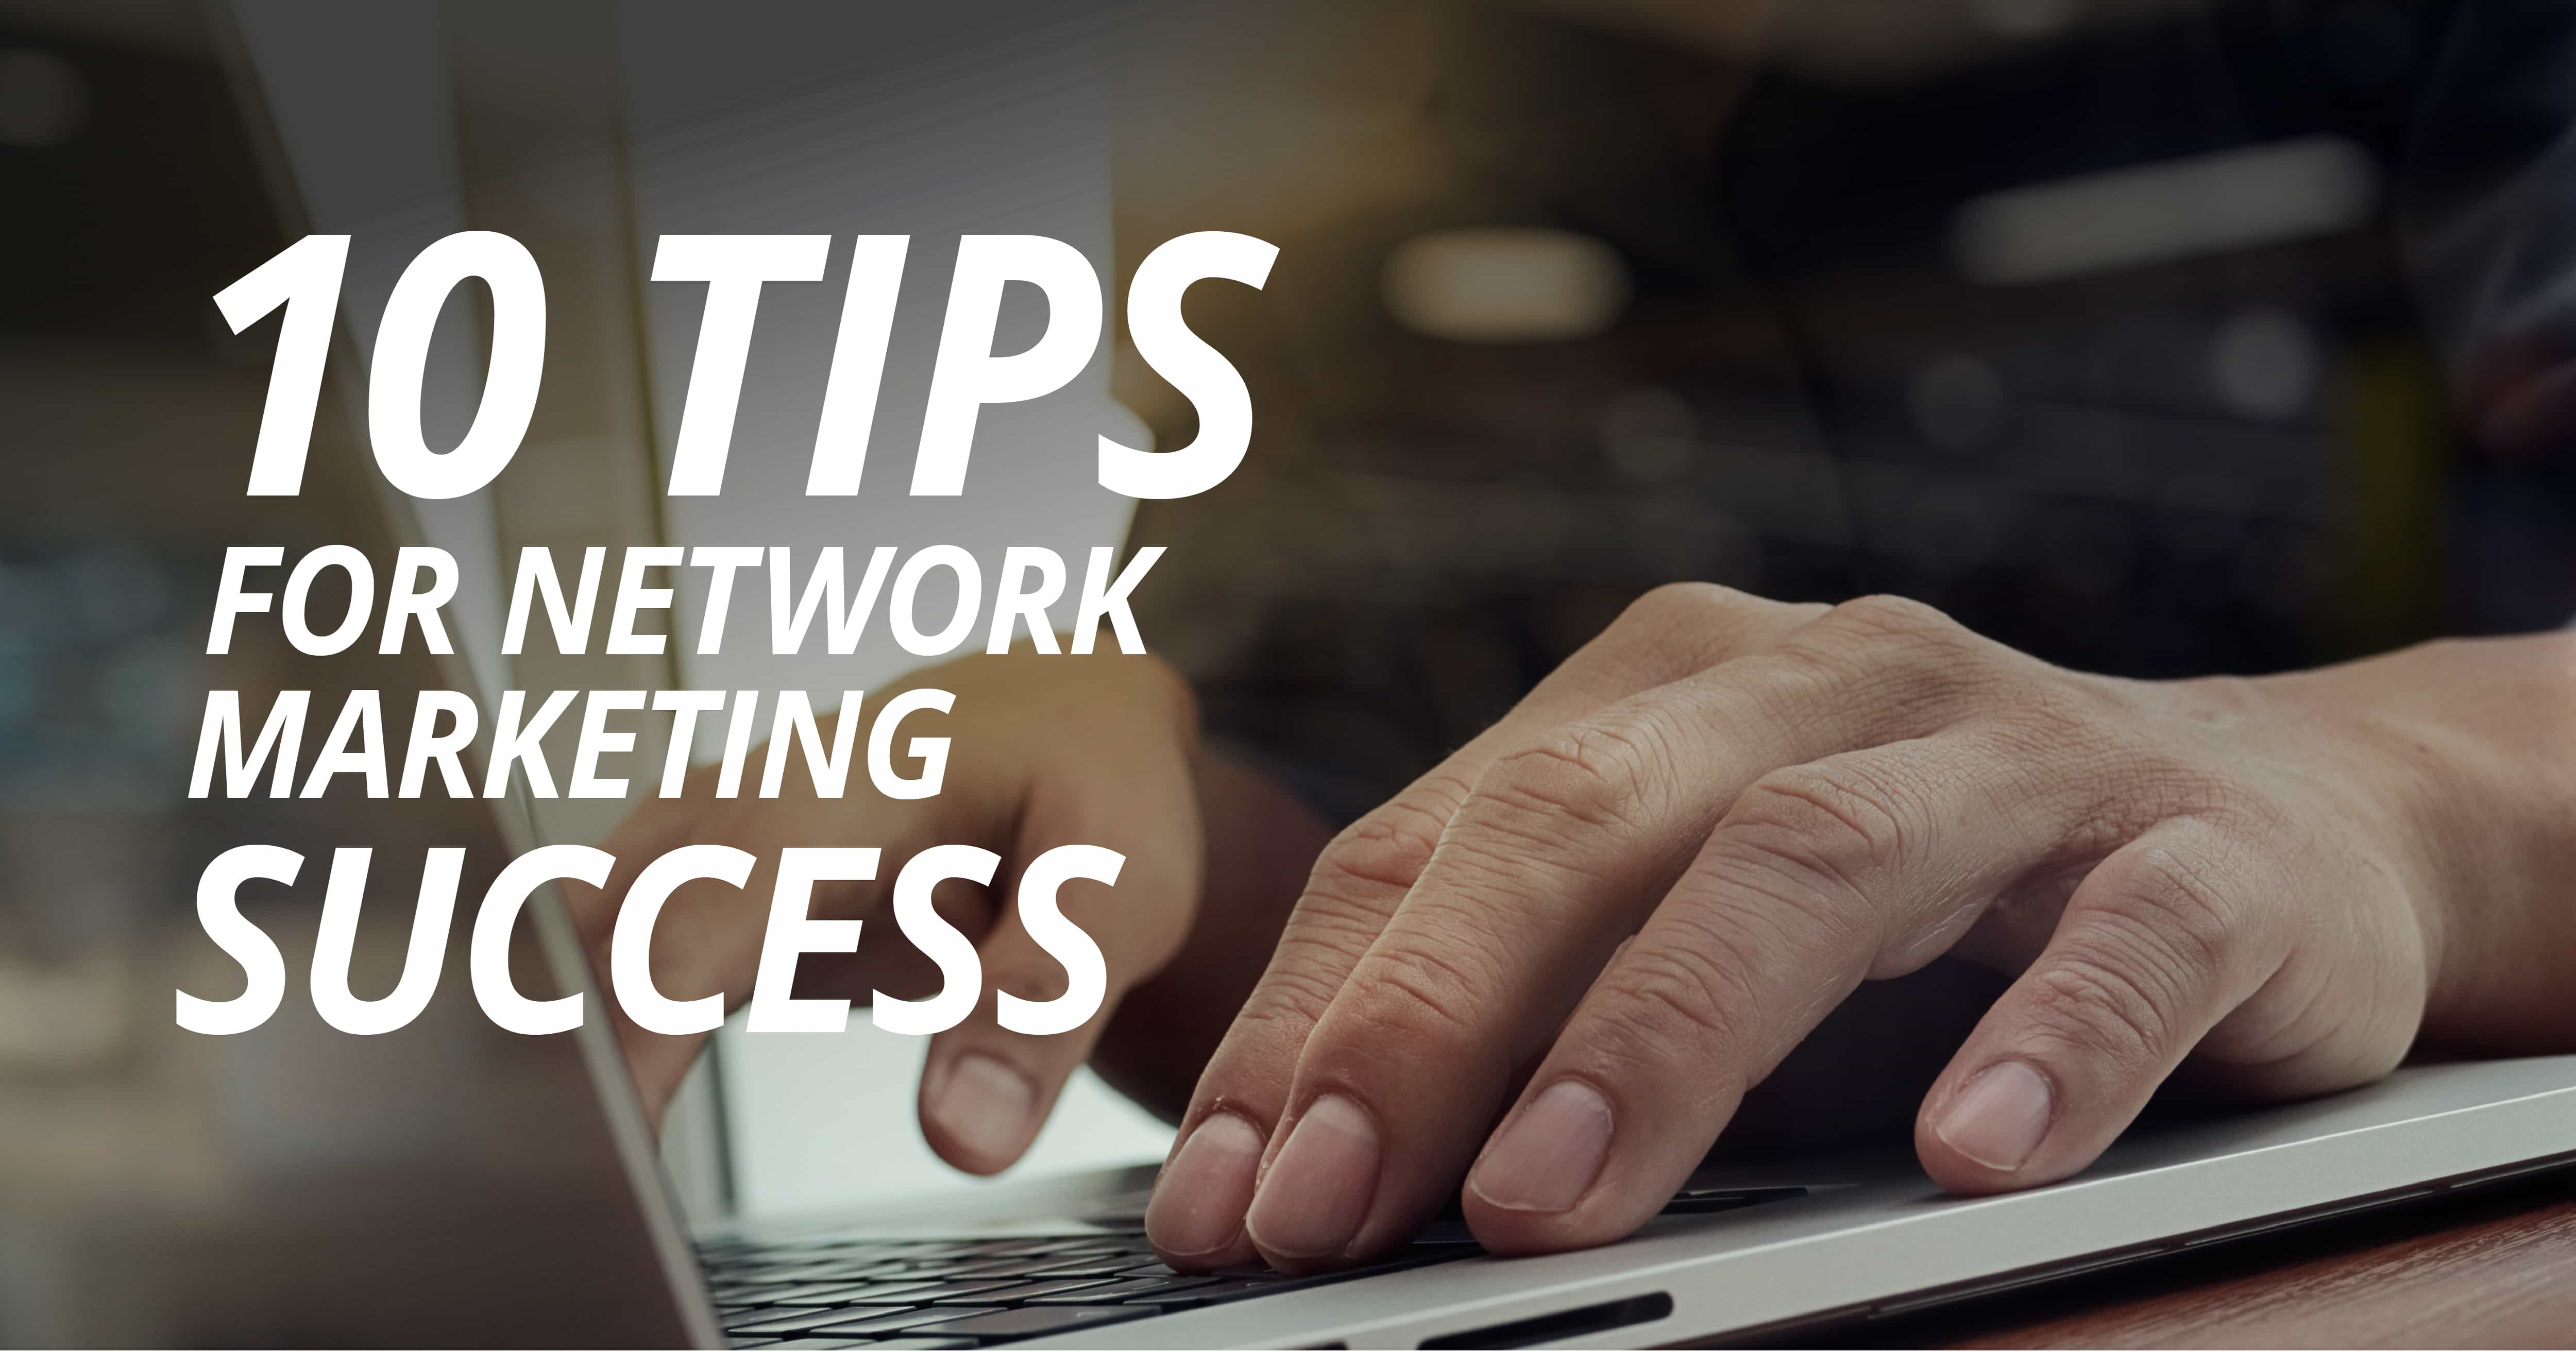 NWORLD 10 TIPS FOR NETWORK MARKETING SUCCESS